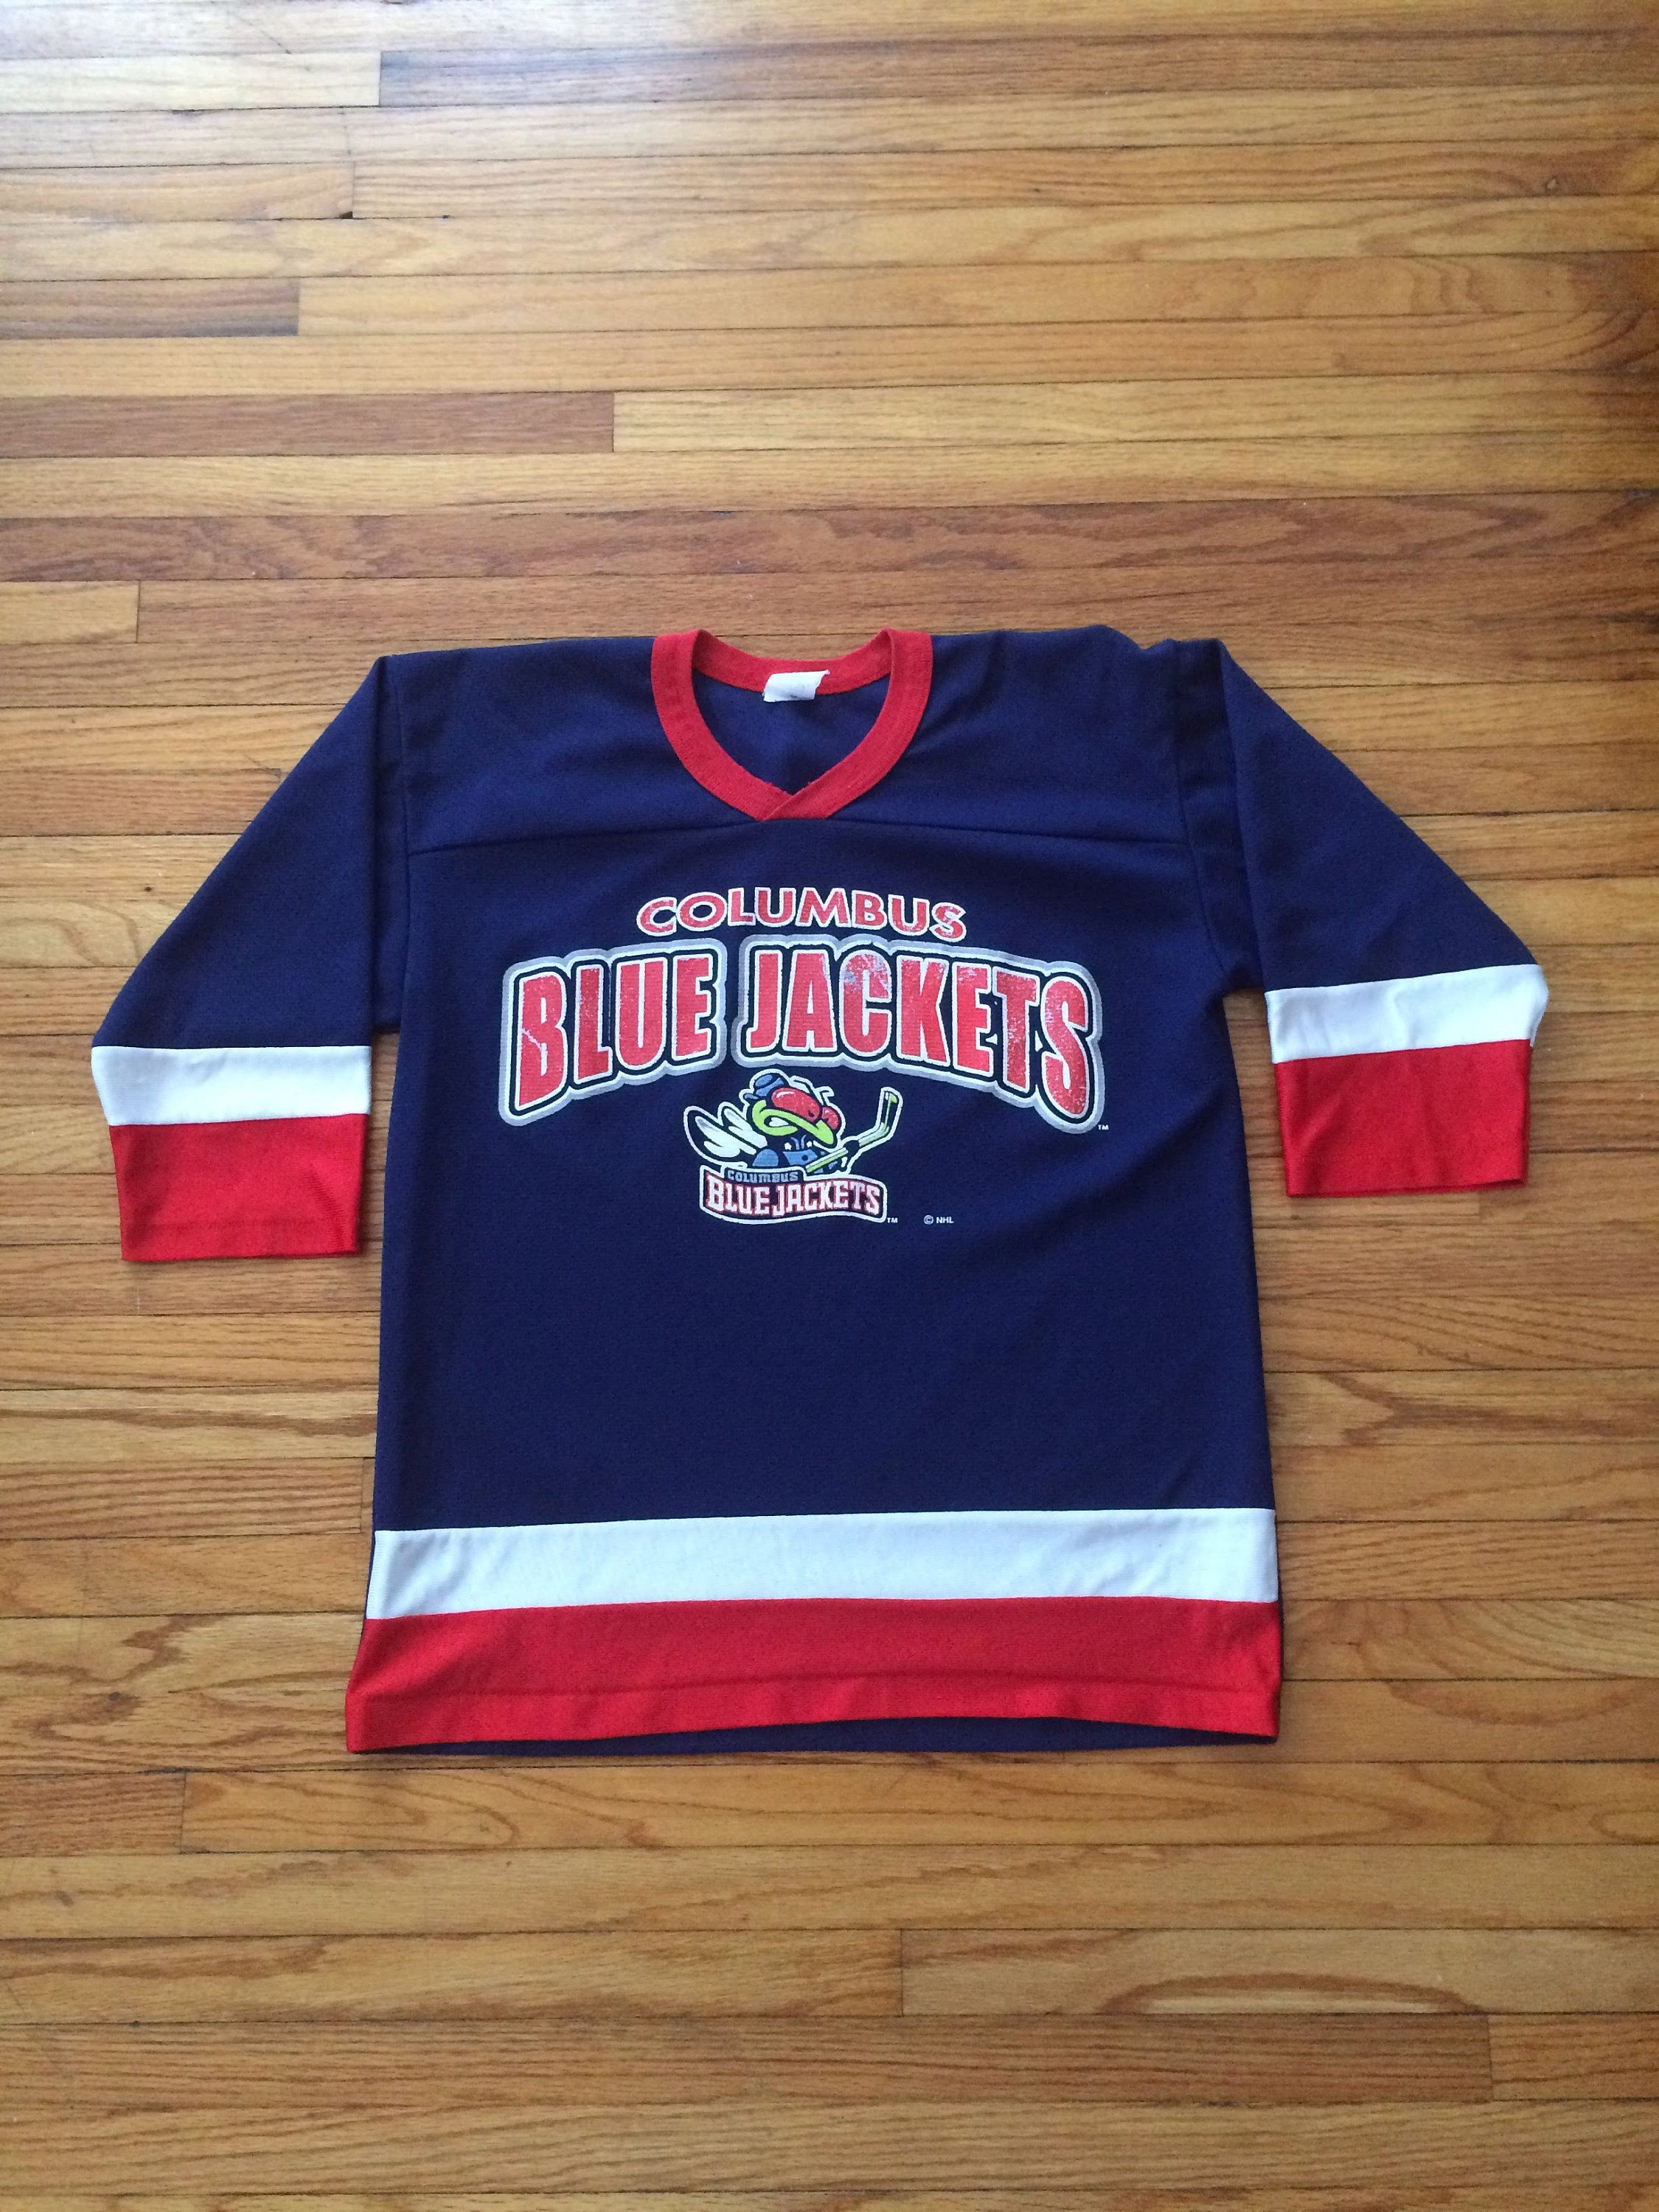 Vintage Columbus Blue Jackets Nhl Hockey Jersey 90 S By Vintagevanshop On Etsy Columbus Blue Jackets Blue Jacket Nhl Hockey Jerseys